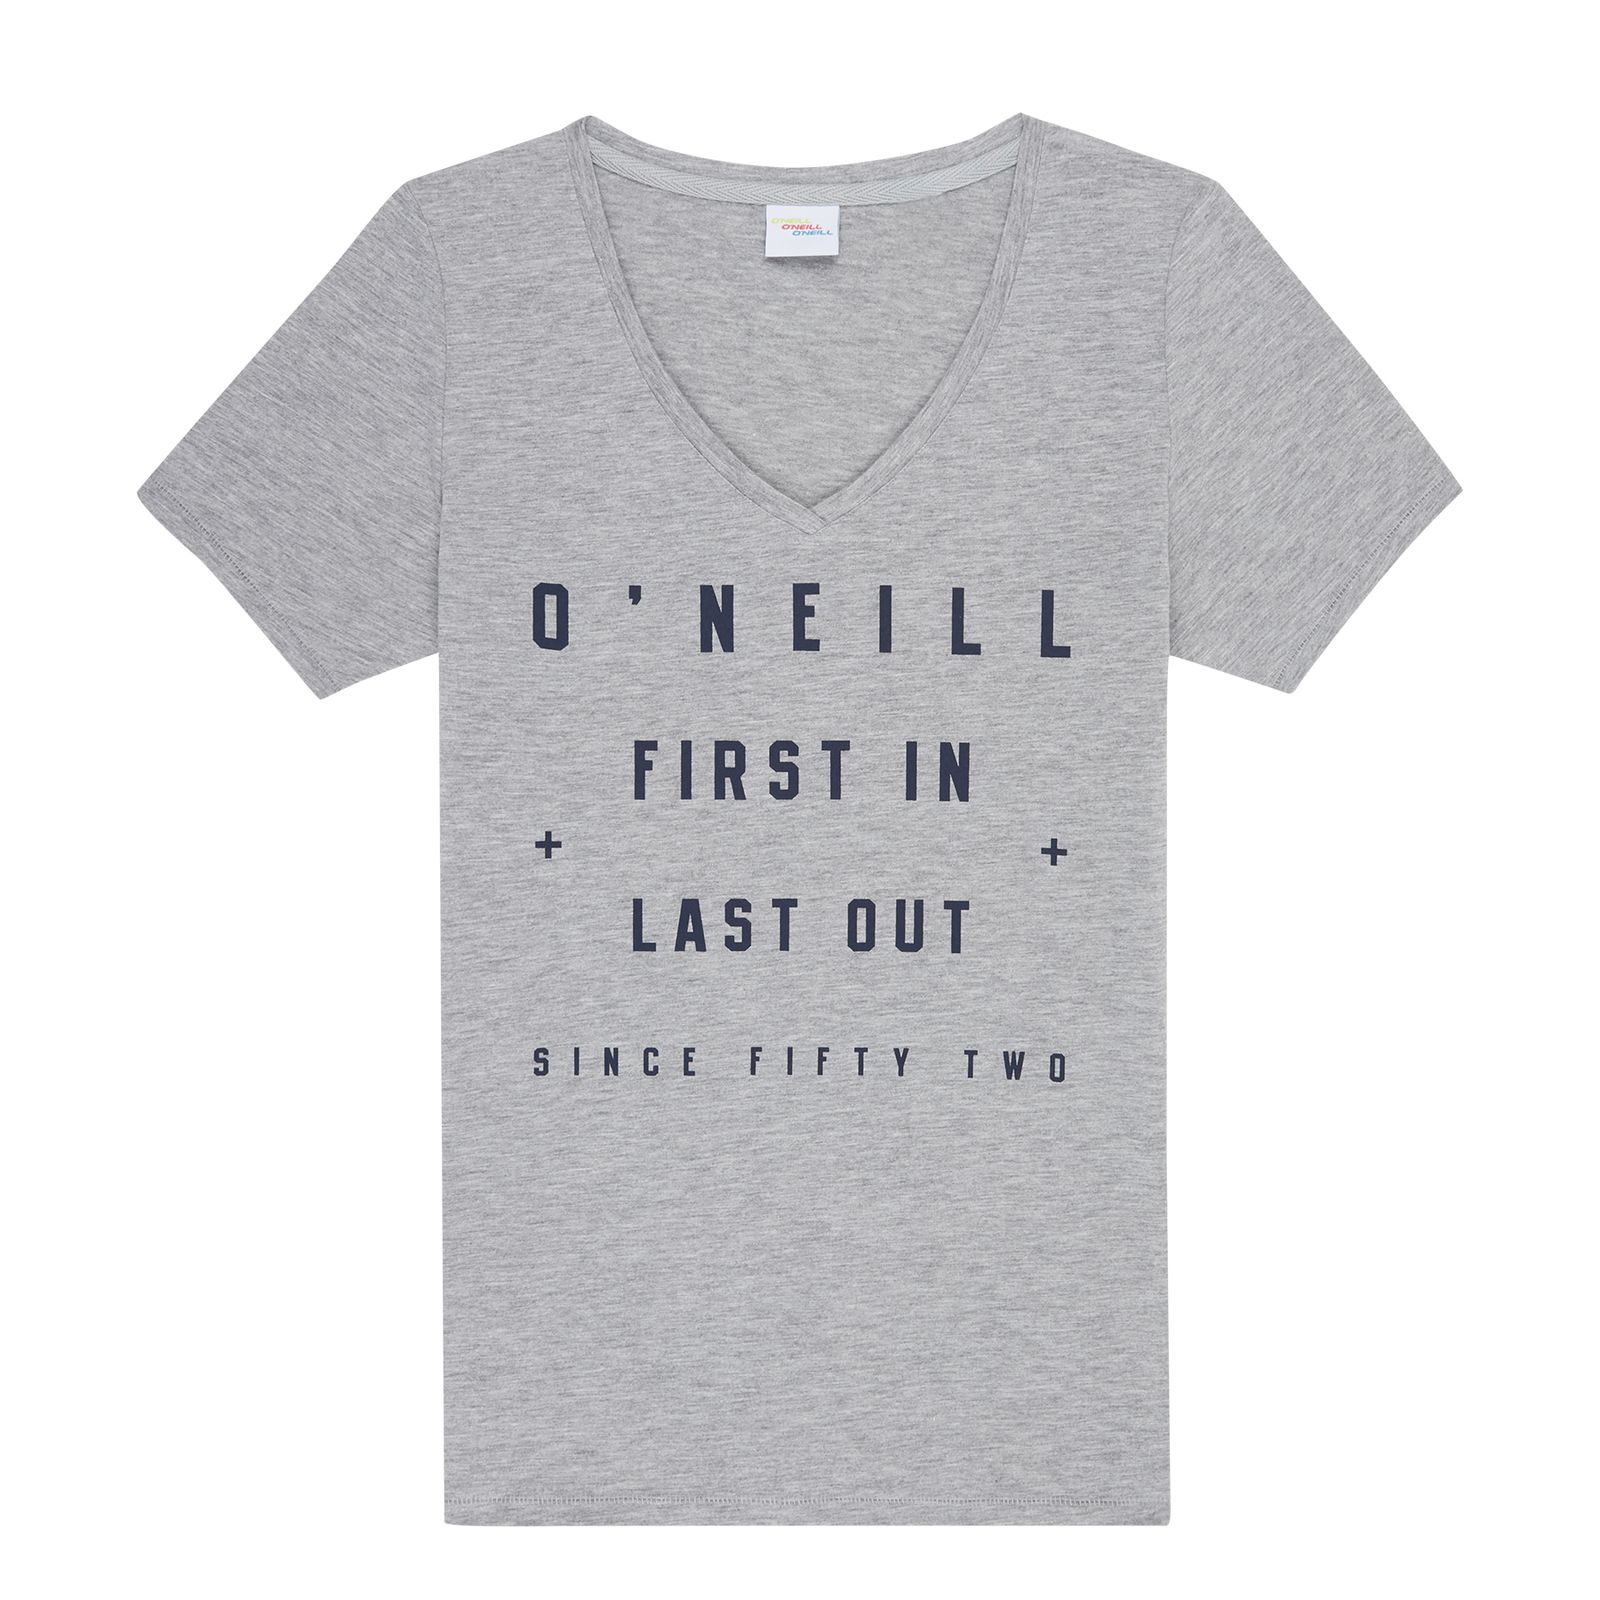 Футболка O'Neill Lw First In Last Out T-Shirt цена 2017